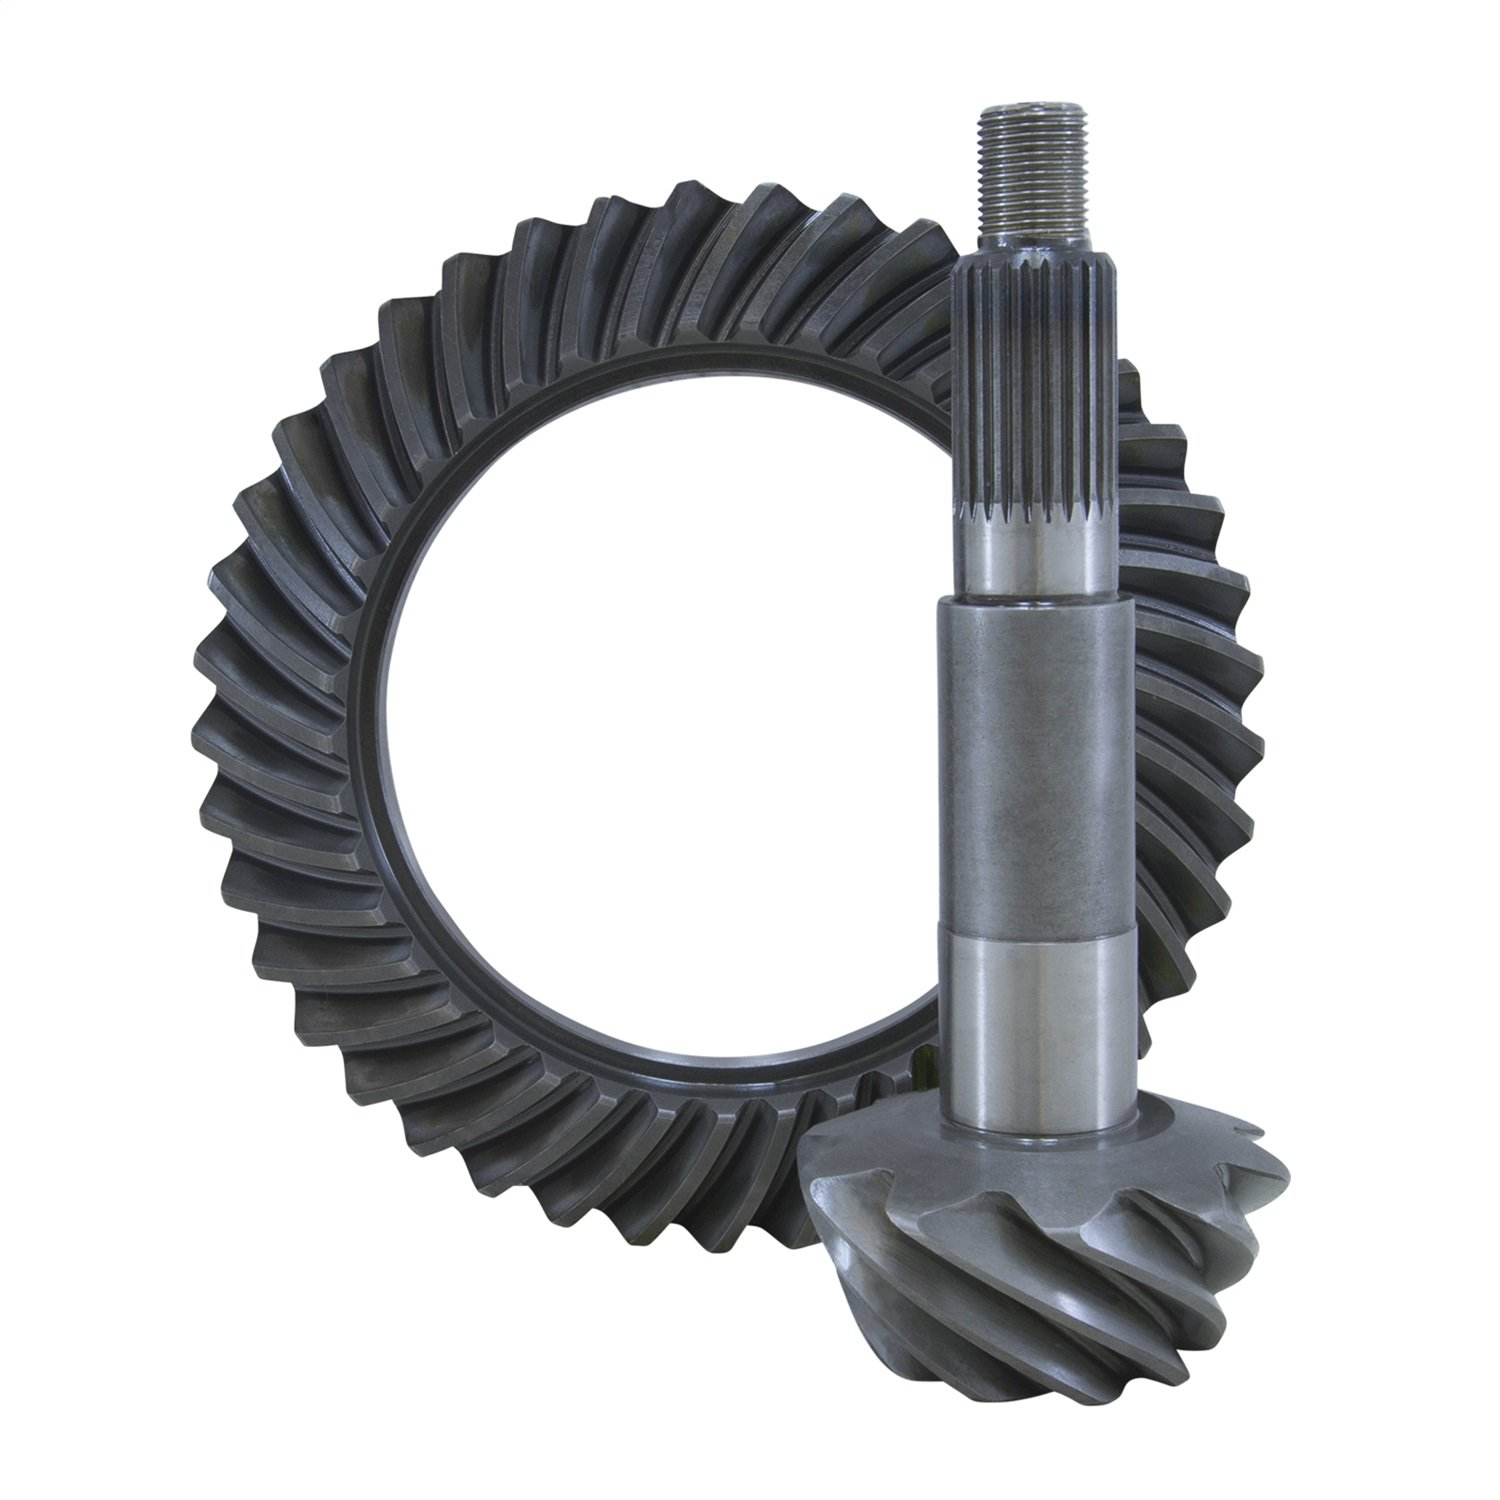 USA Standard Gear (ZG D44-354) Replacement Ring & Pinion Gear Set for Dana 44 Differential